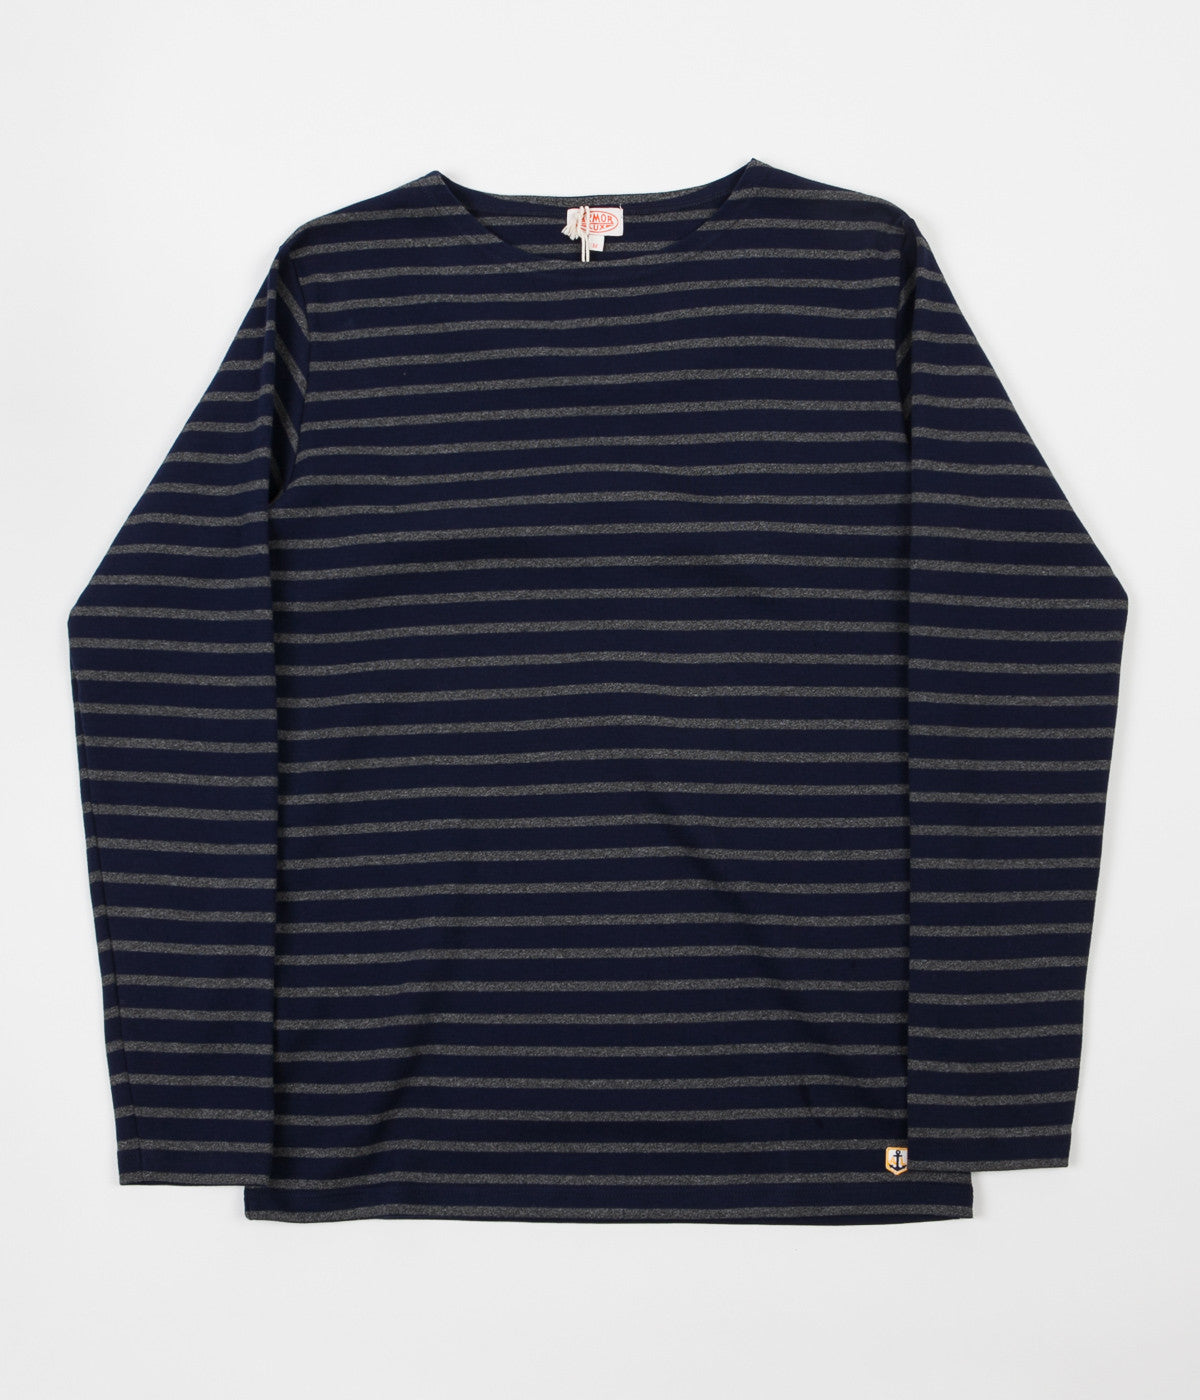 Armor Lux Breton Long Sleeve T-Shirt - Seal / Asfalto